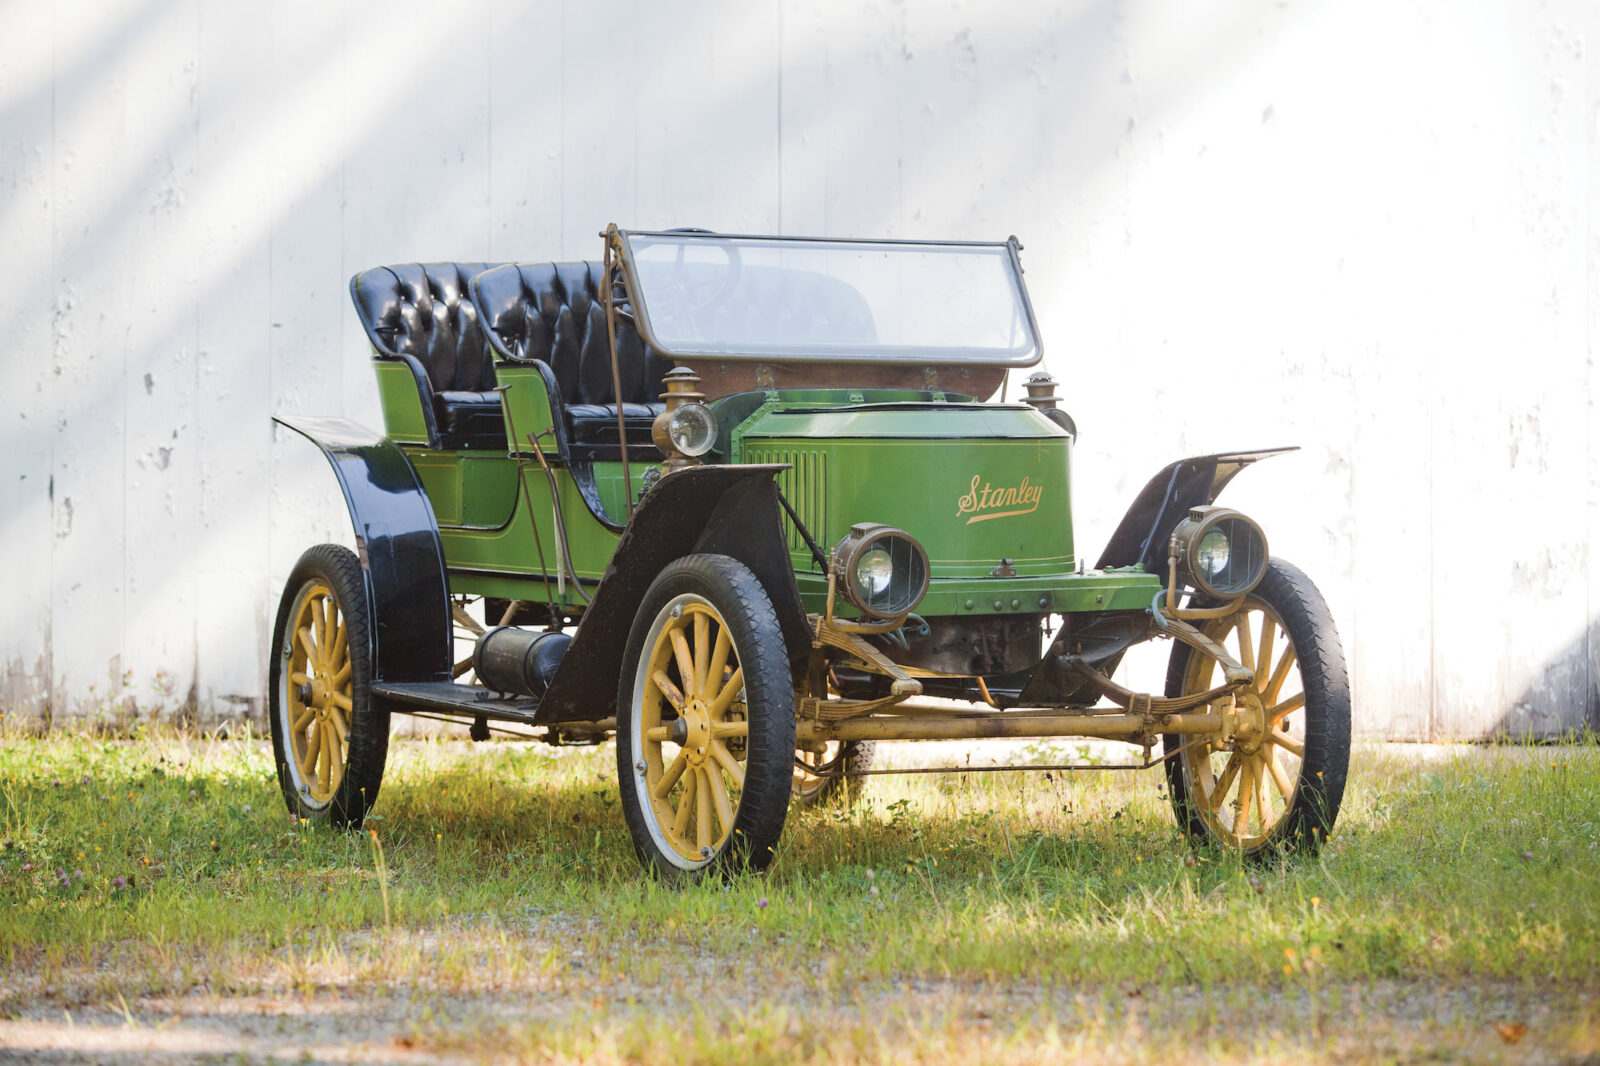 Stanley Steamer 1600x1066 - Stanley Steamer: Model E2